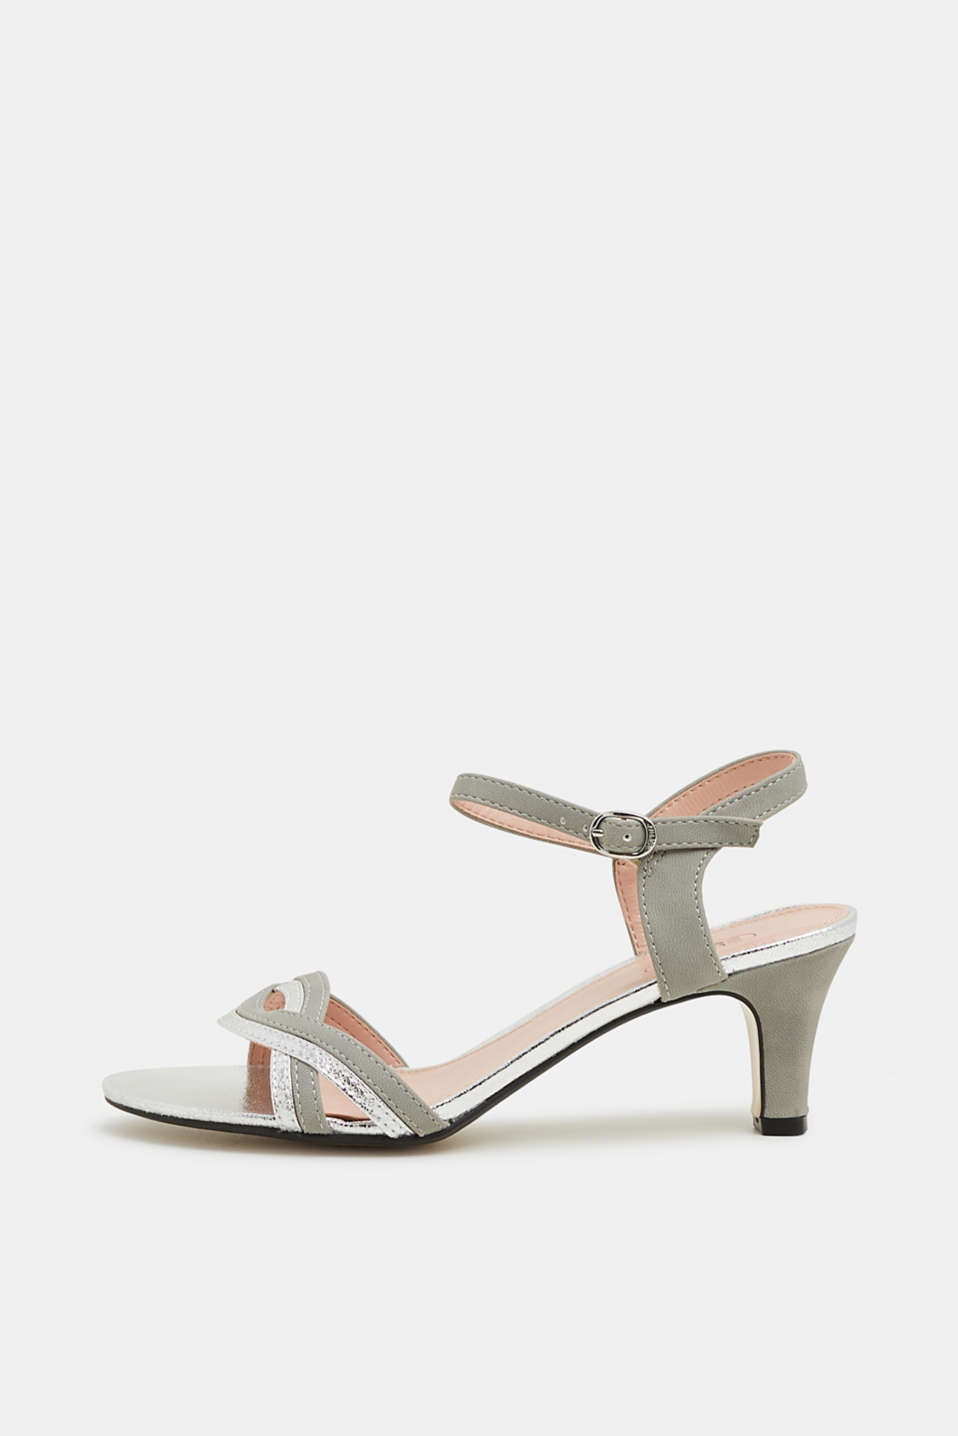 Esprit - Faux leather sandals with metallic accents